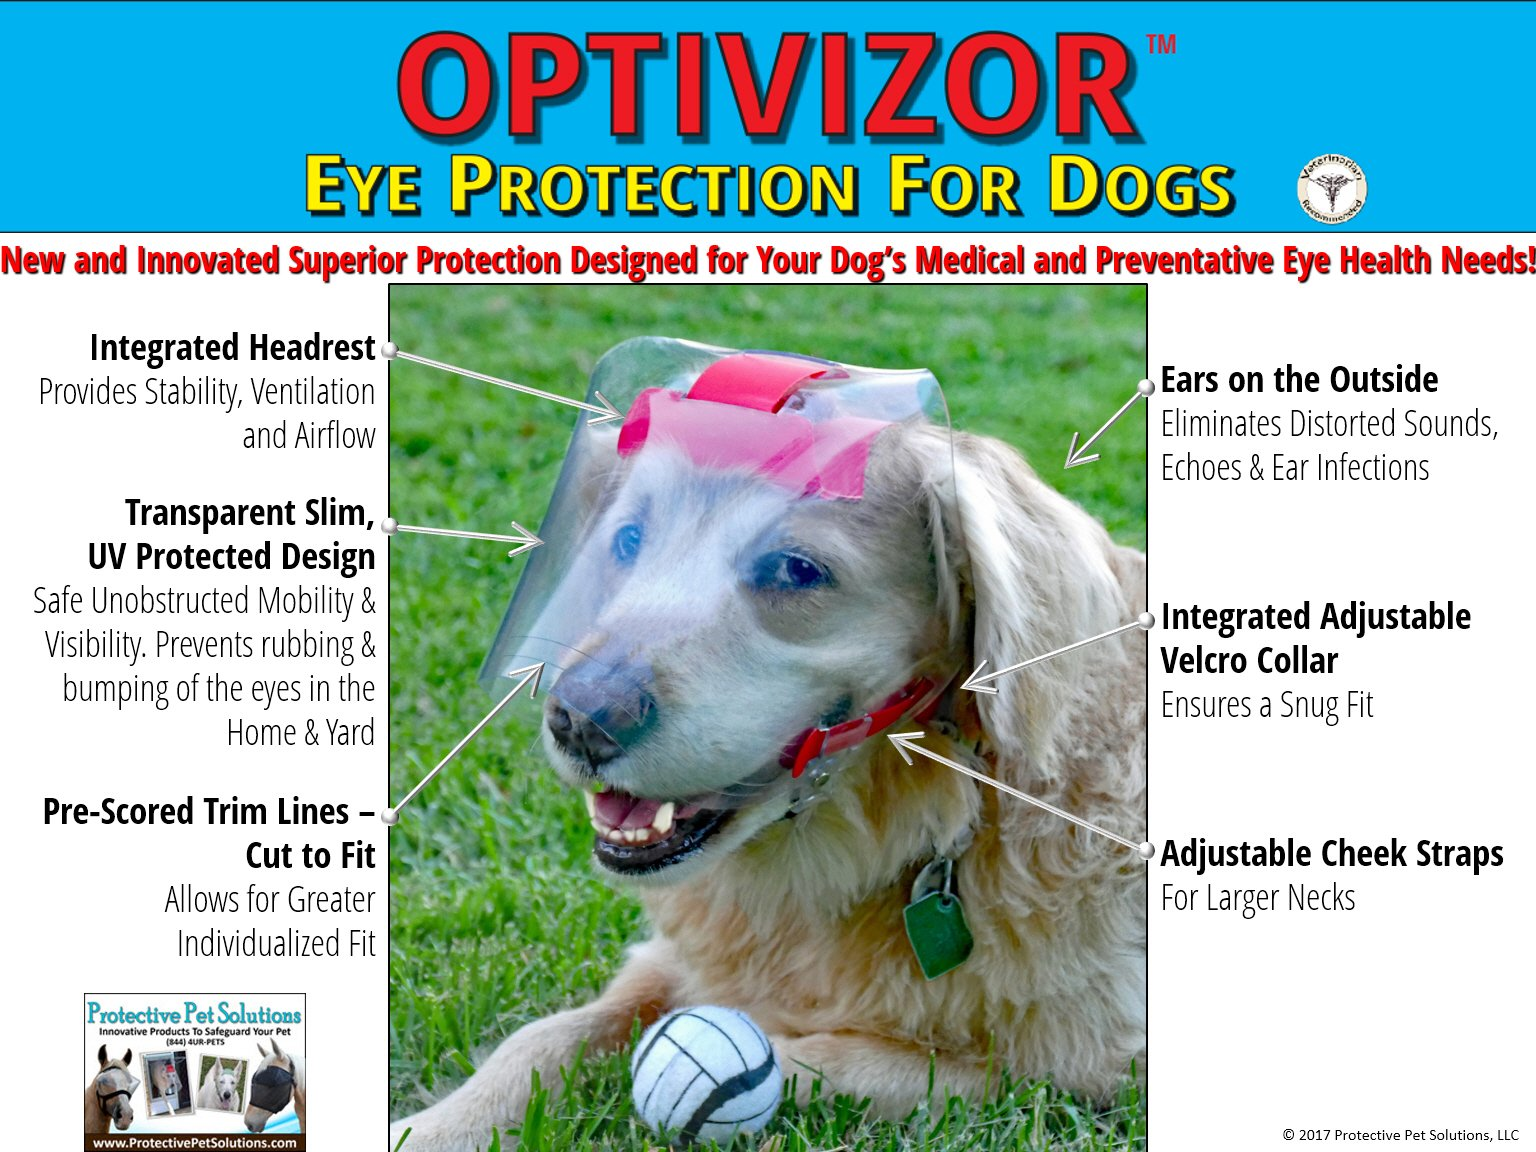 Optivizor Advanced Eye Protection for Dogs (Clear UV Tint, TOY)